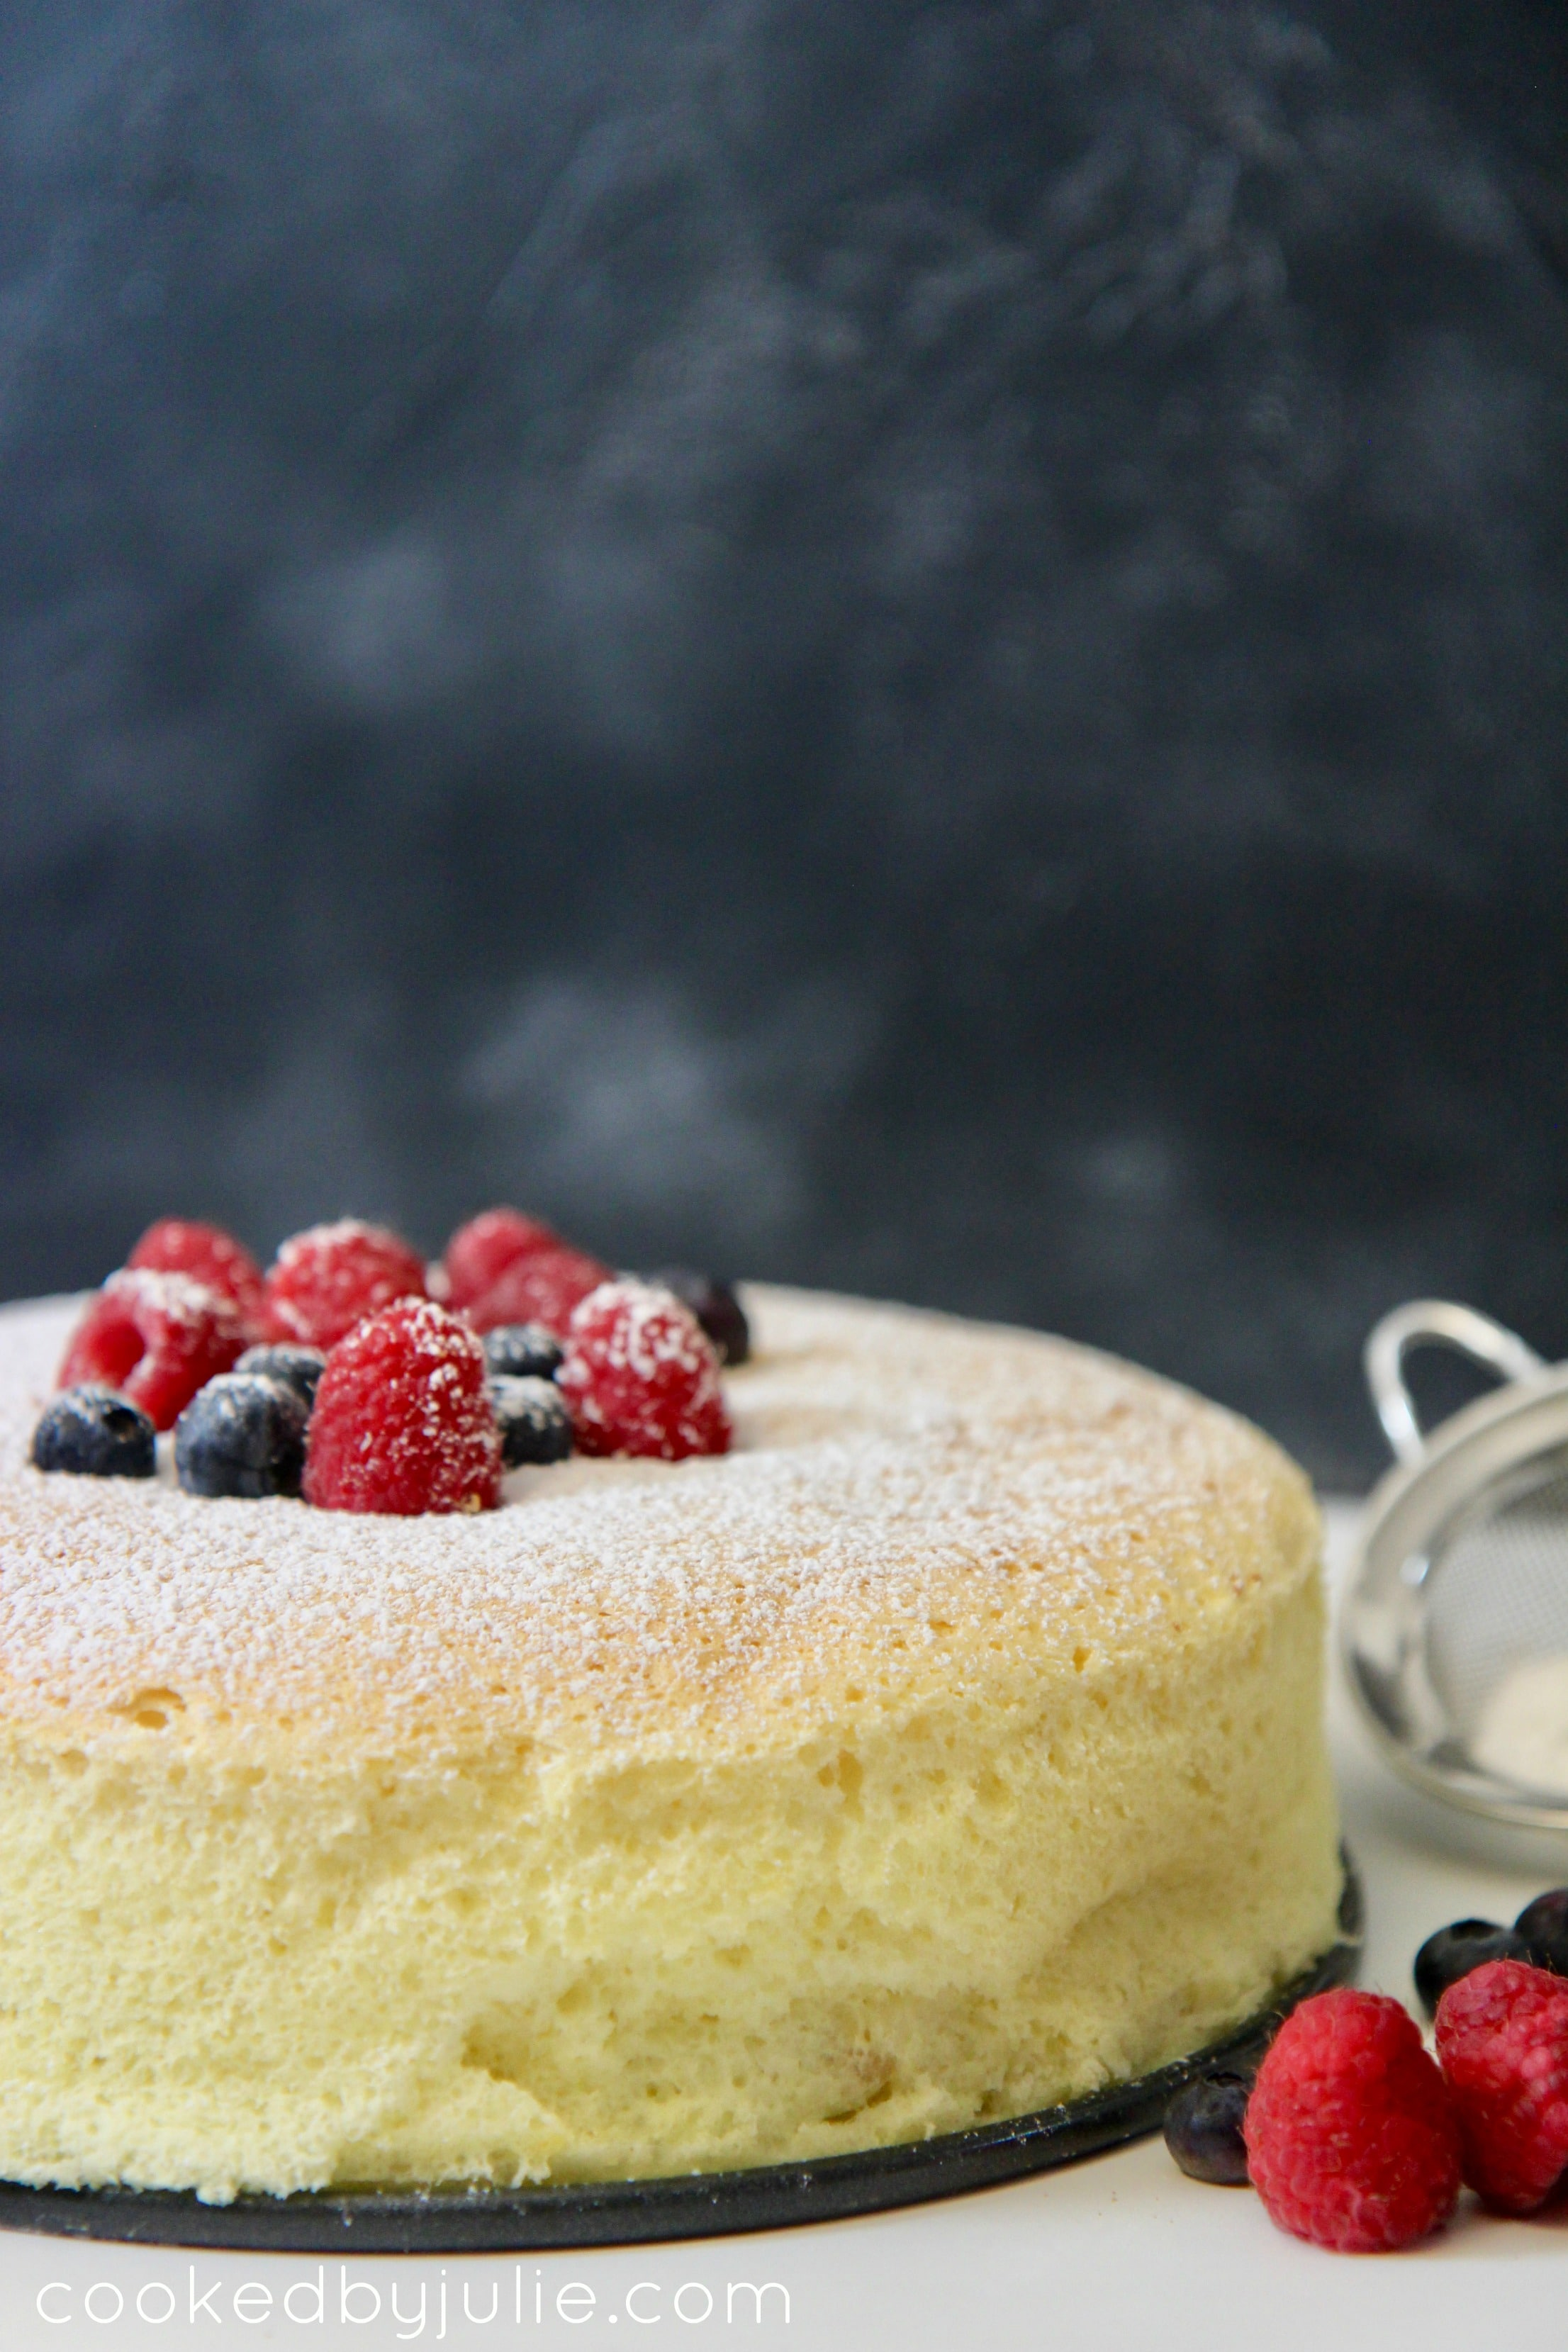 Japanese Cotton Cheesecake with fresh fruit and powdered sugar